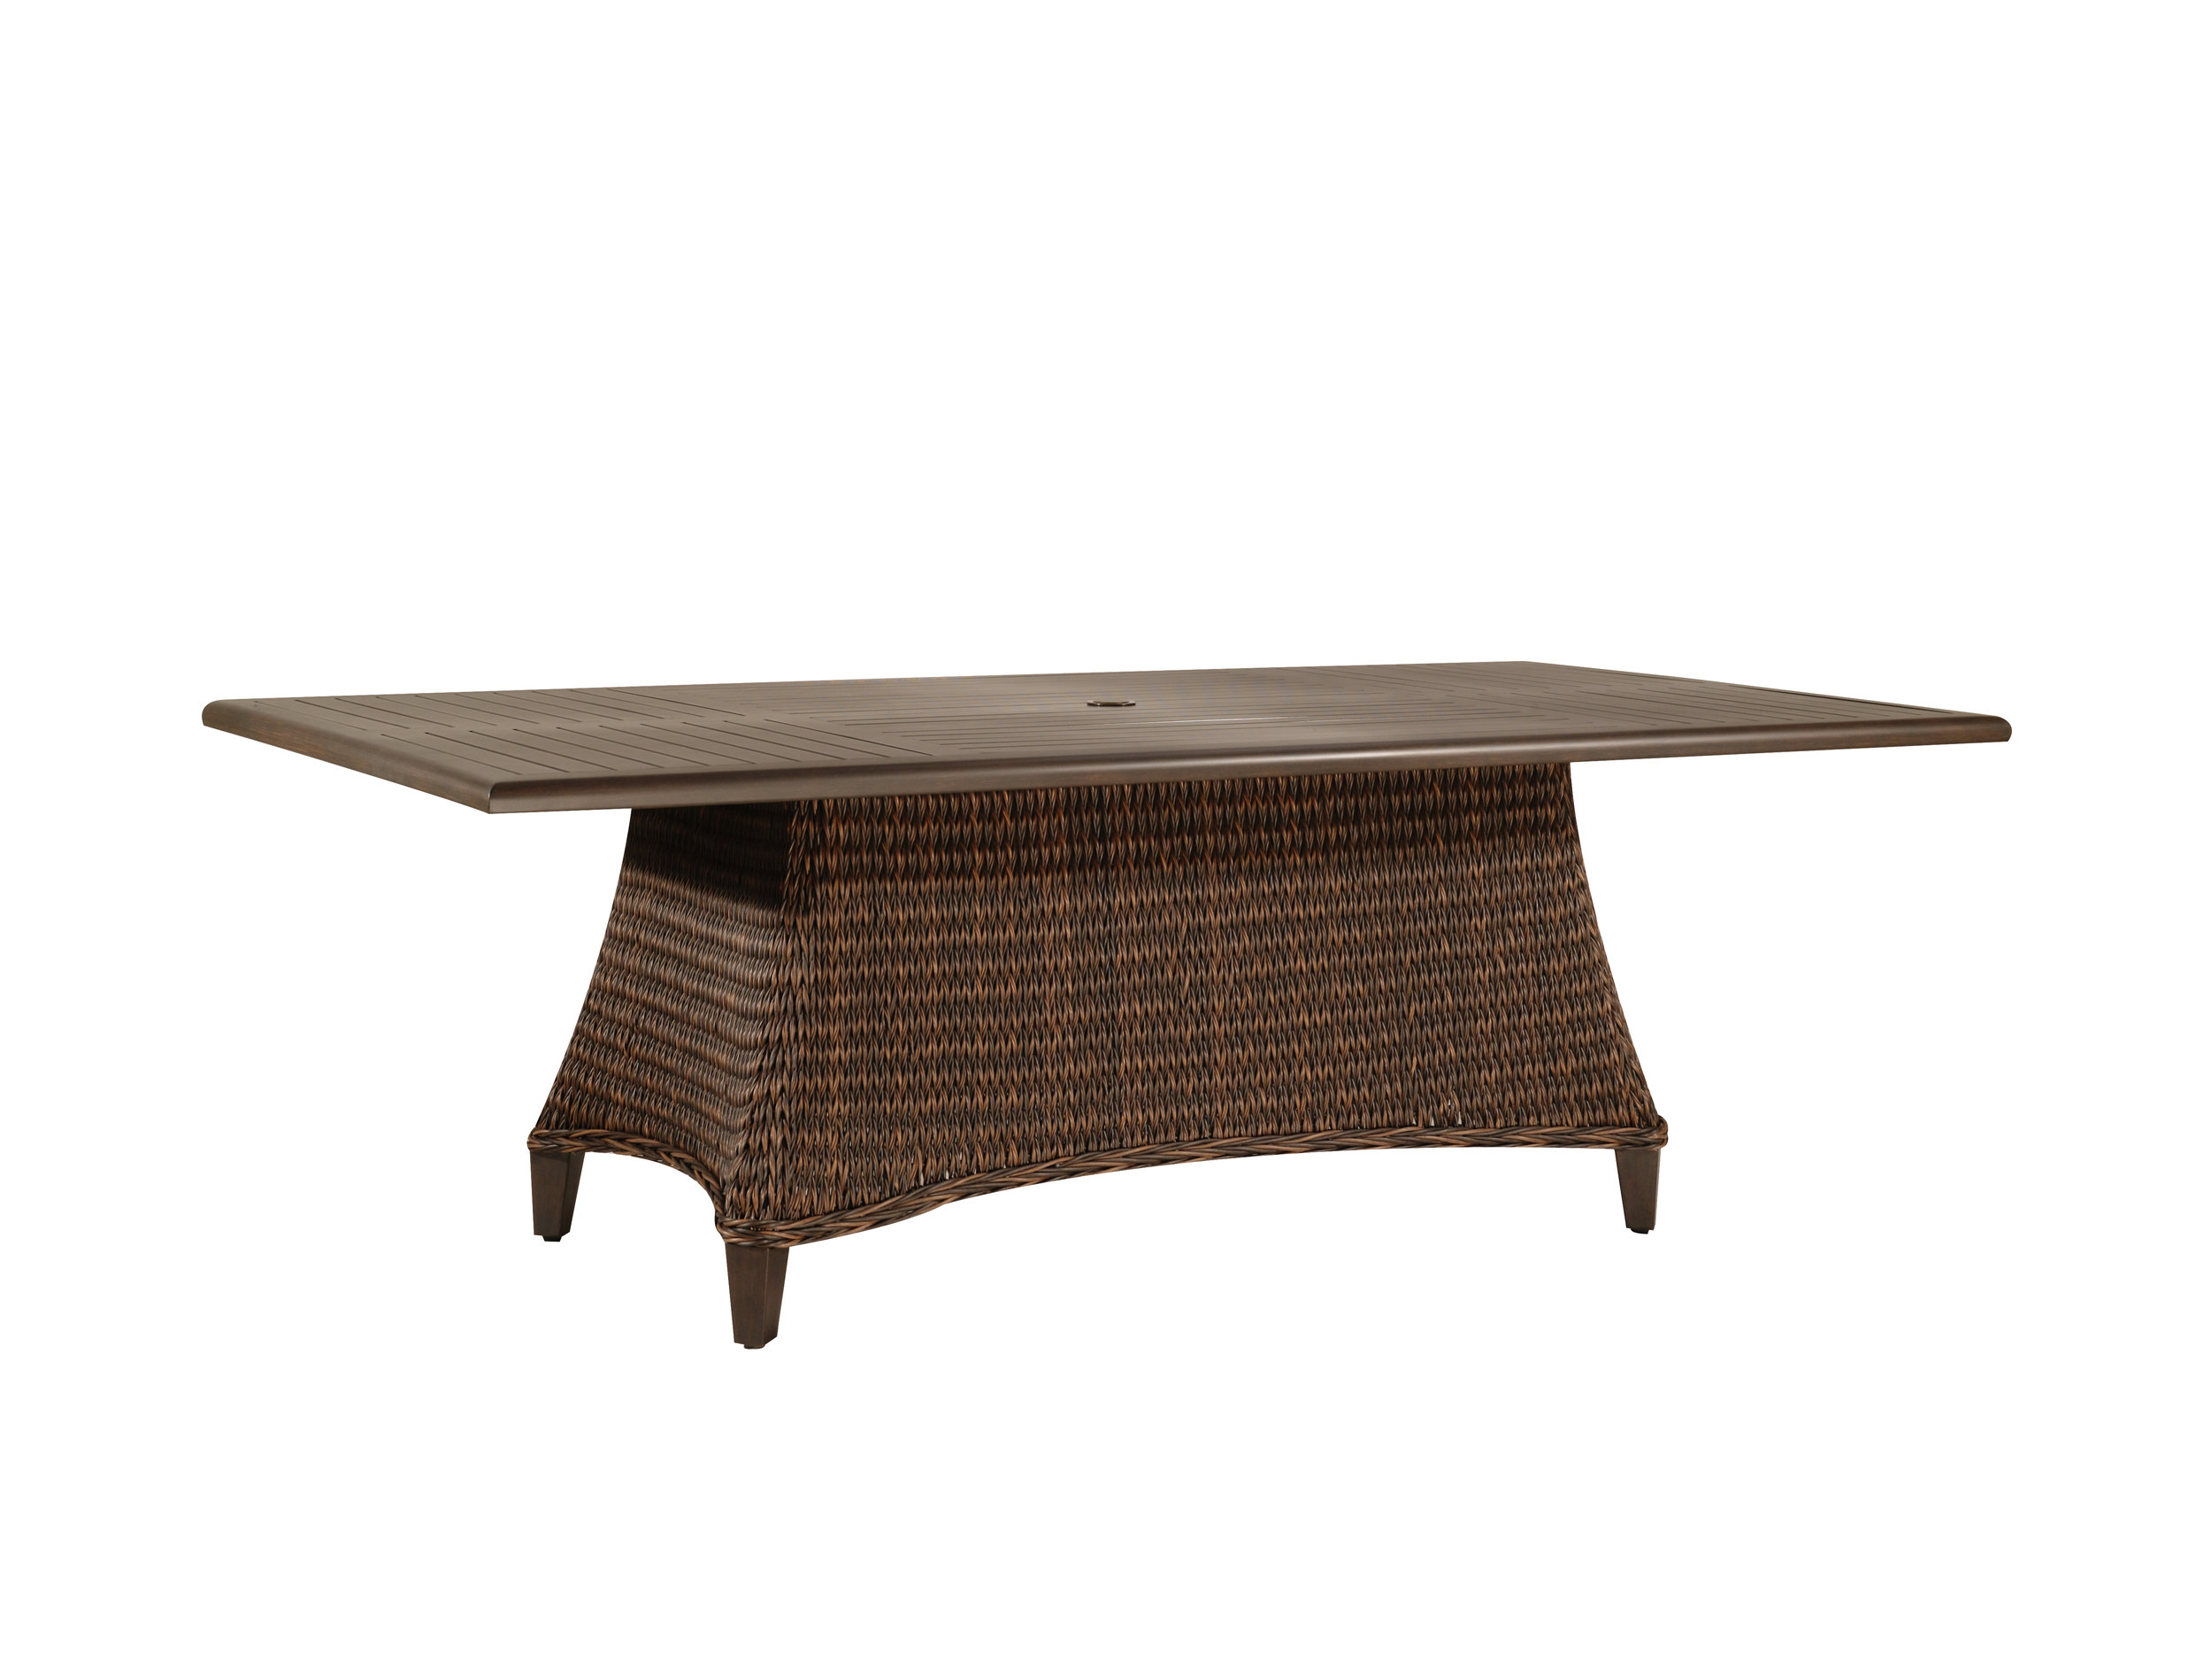 "973084B Monticello 84"" Dining Table Base   (Top : W-42R Farnham Aluminum Faux Wood Top)  28.8"" x 58.8"" x 27.5"""